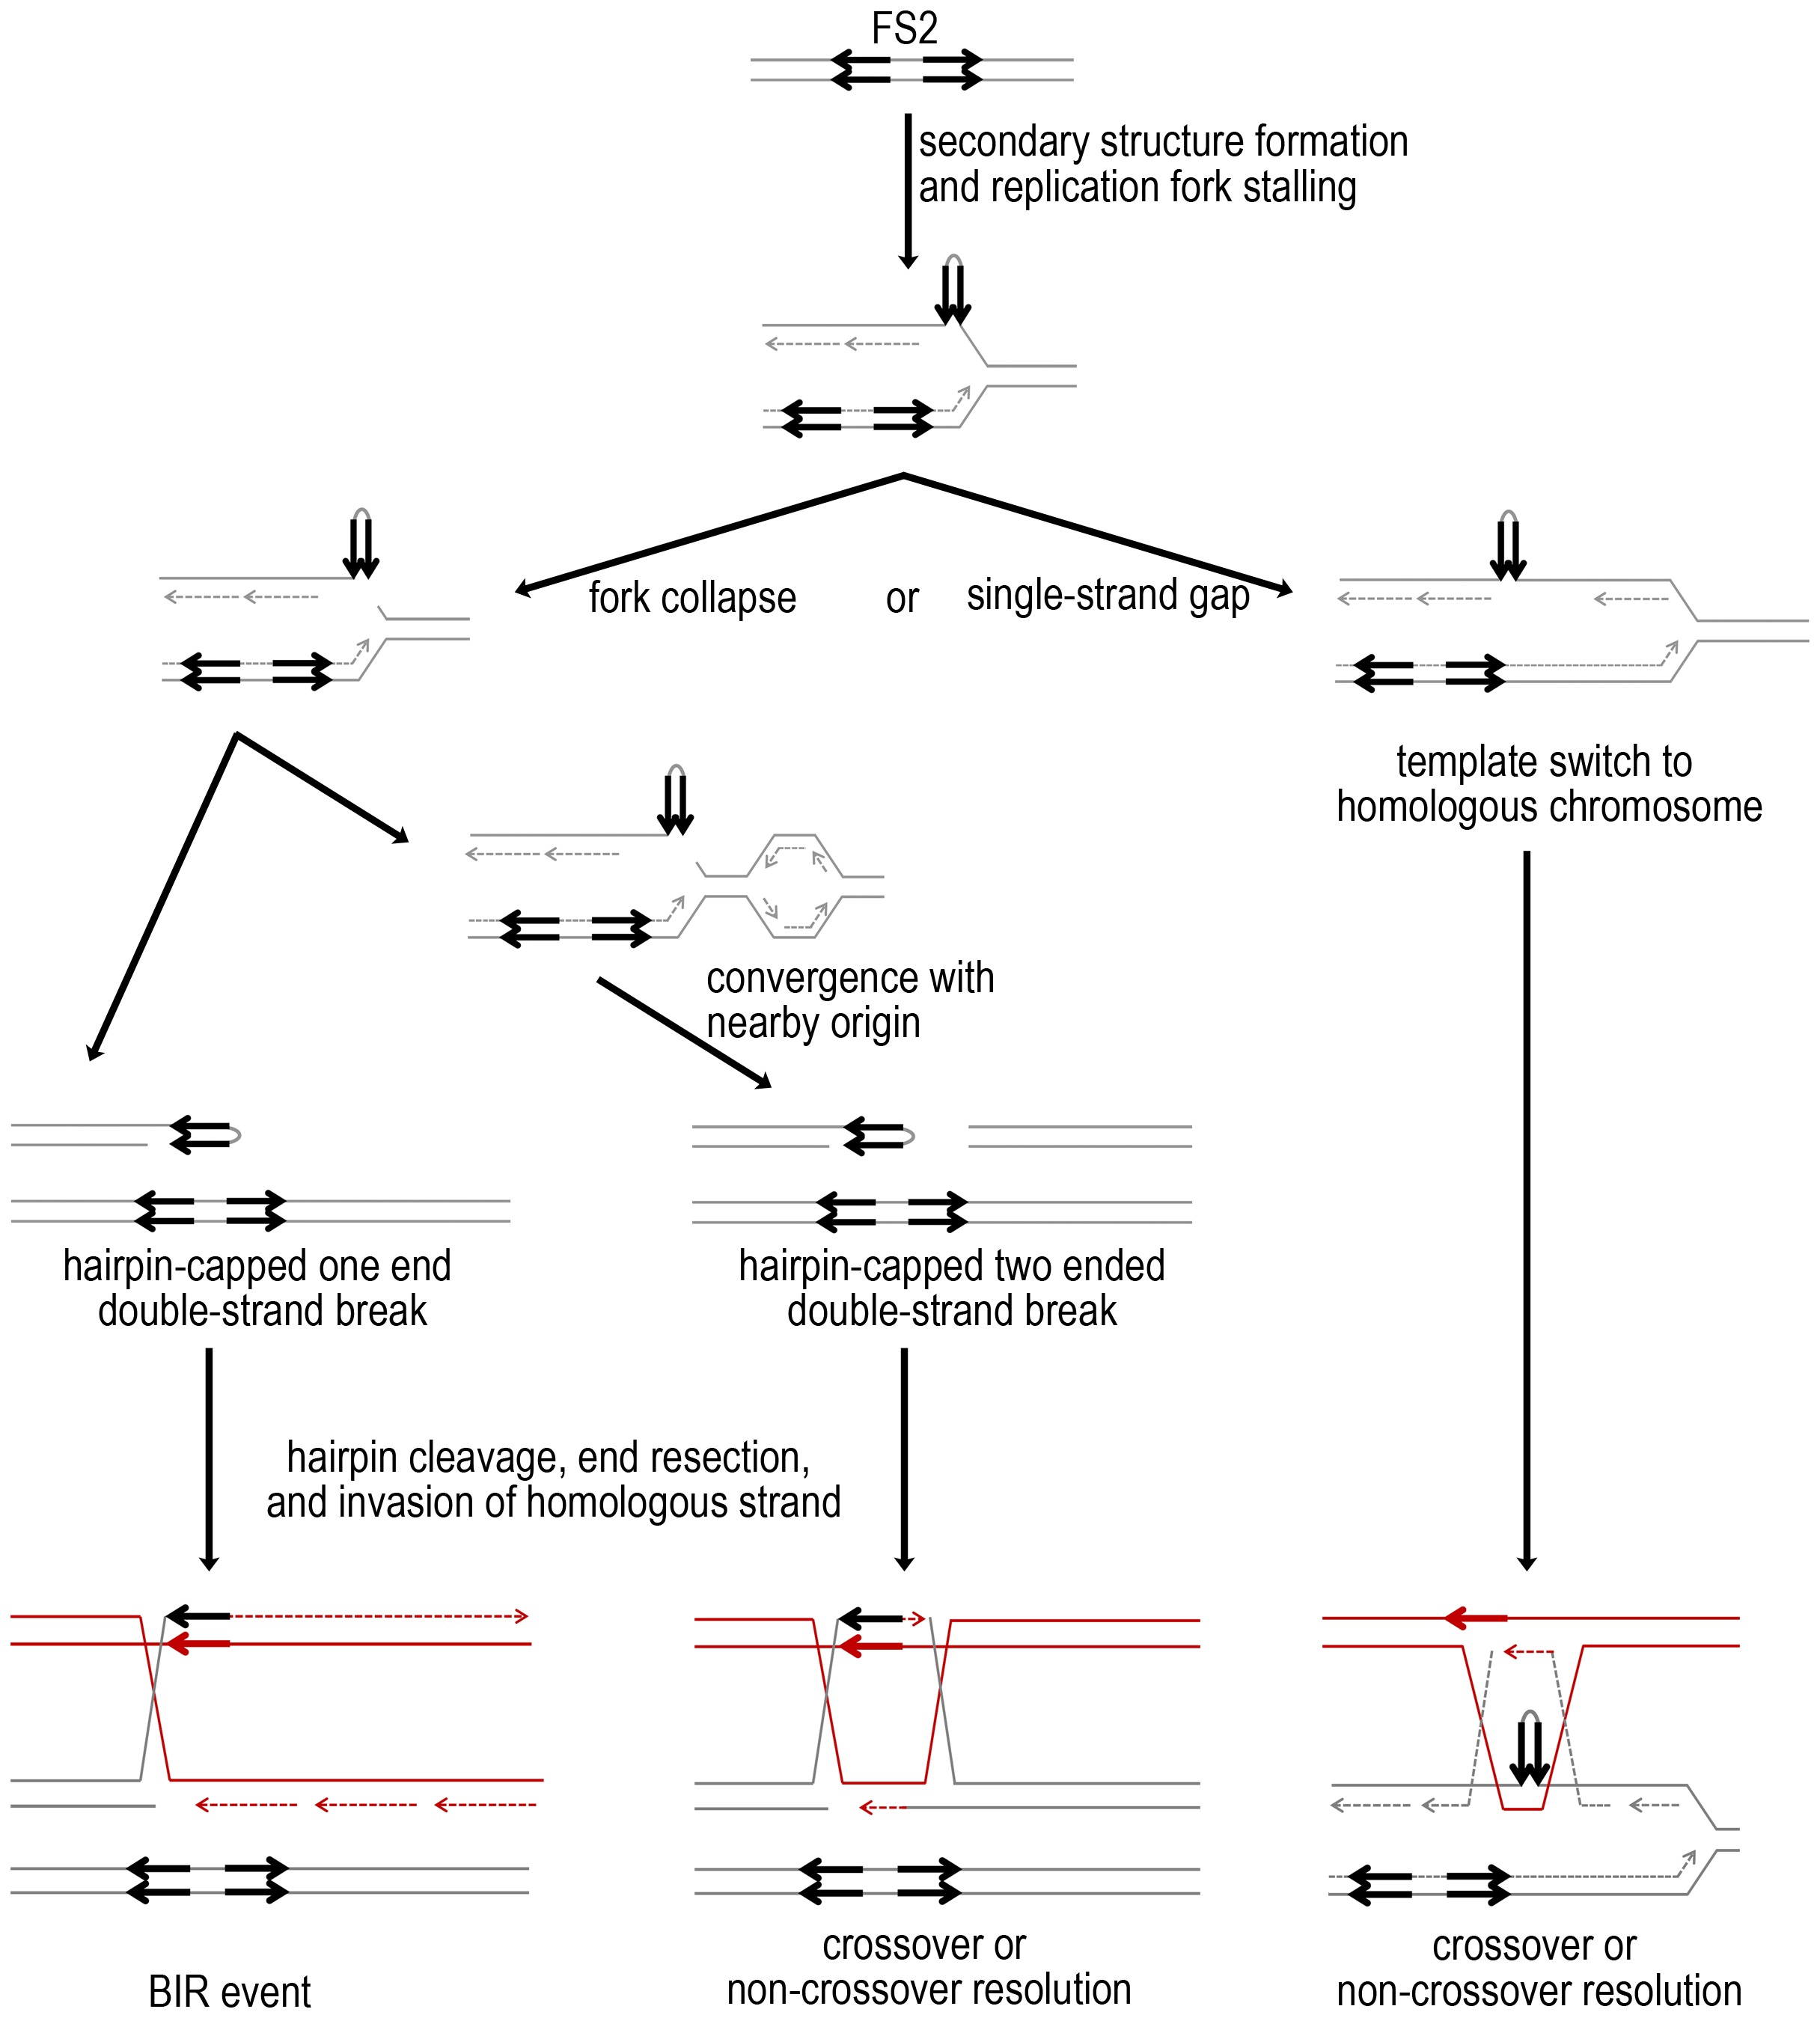 Mechanisms for fragile site stimulated mitotic crossovers and BIR events.